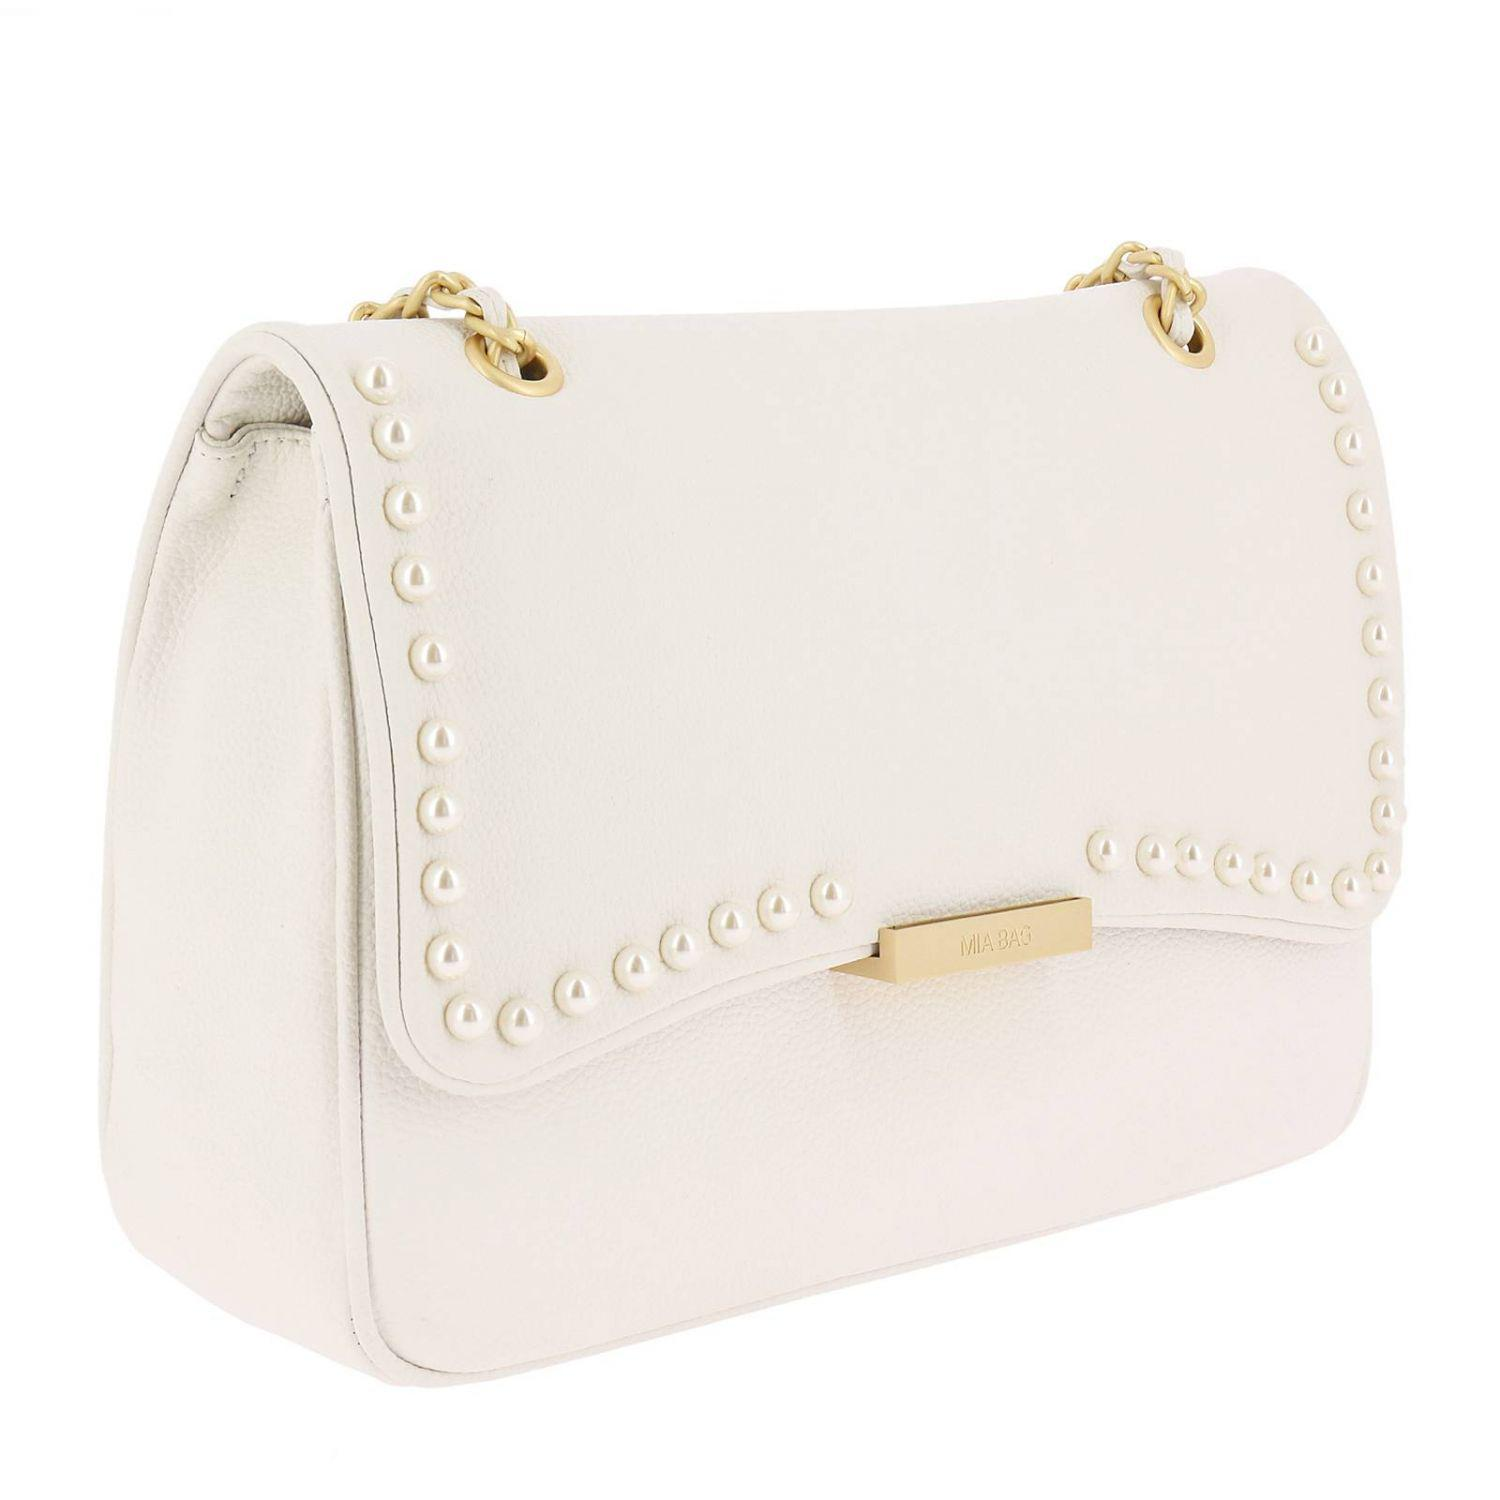 Mia Bag Leather Crossbody Bags Shoulder Bag Women in White